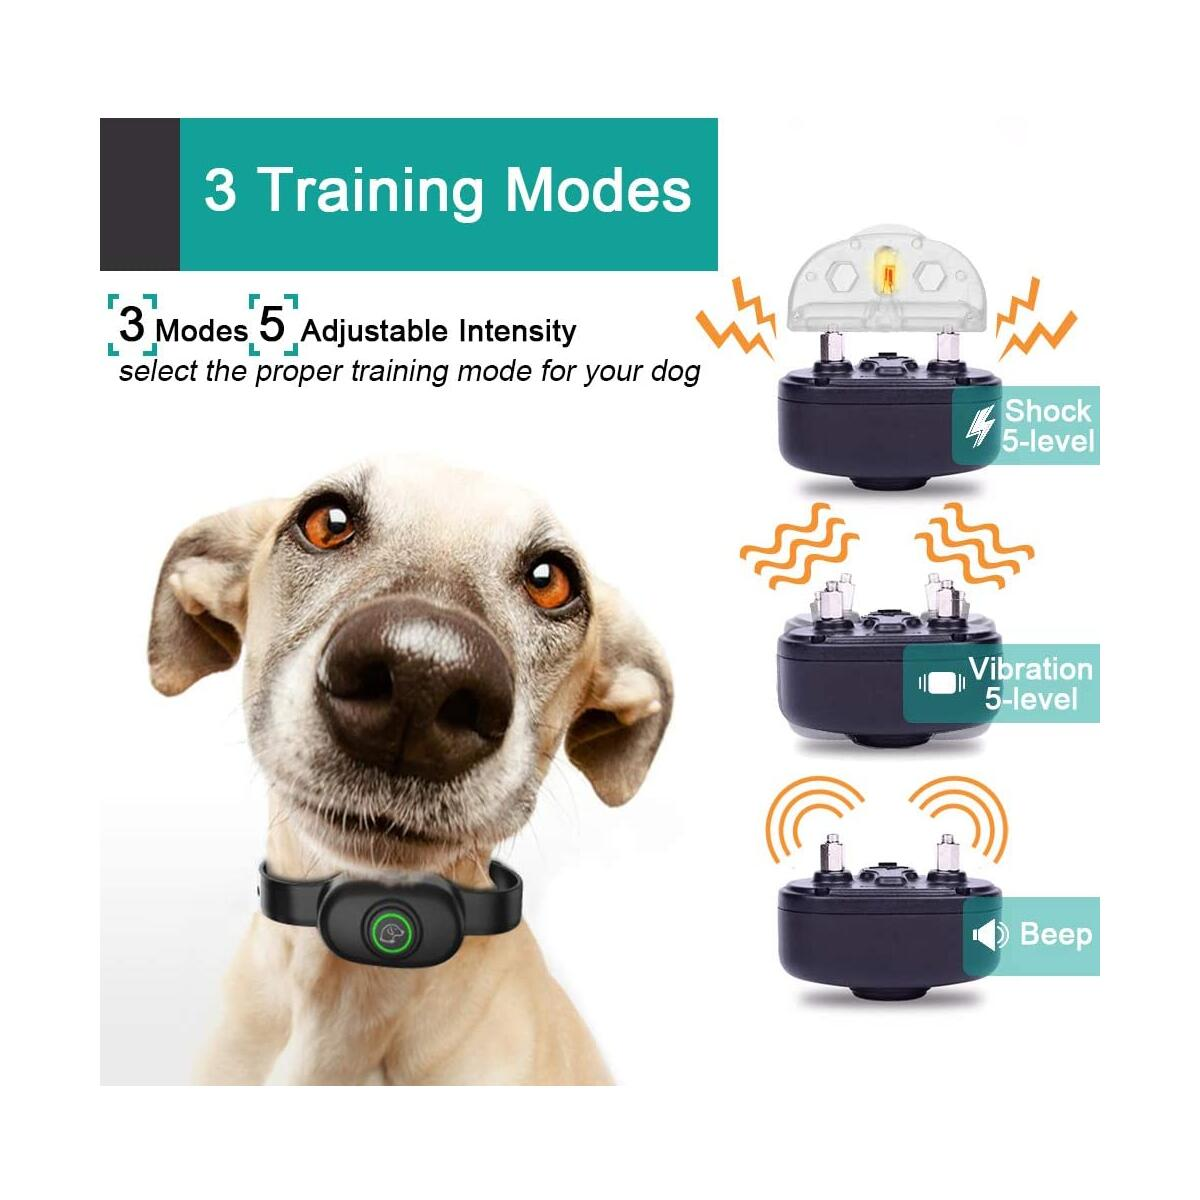 Dog Training Collar, Waterproof Rechargeable 2 Dogs Shock Collar with Remote, 3 Modes Beep Vibration and Shock, up to 1300ft Remote Range Electronic Dog Bark Collars for Small Medium Large Dogs 2 Pack